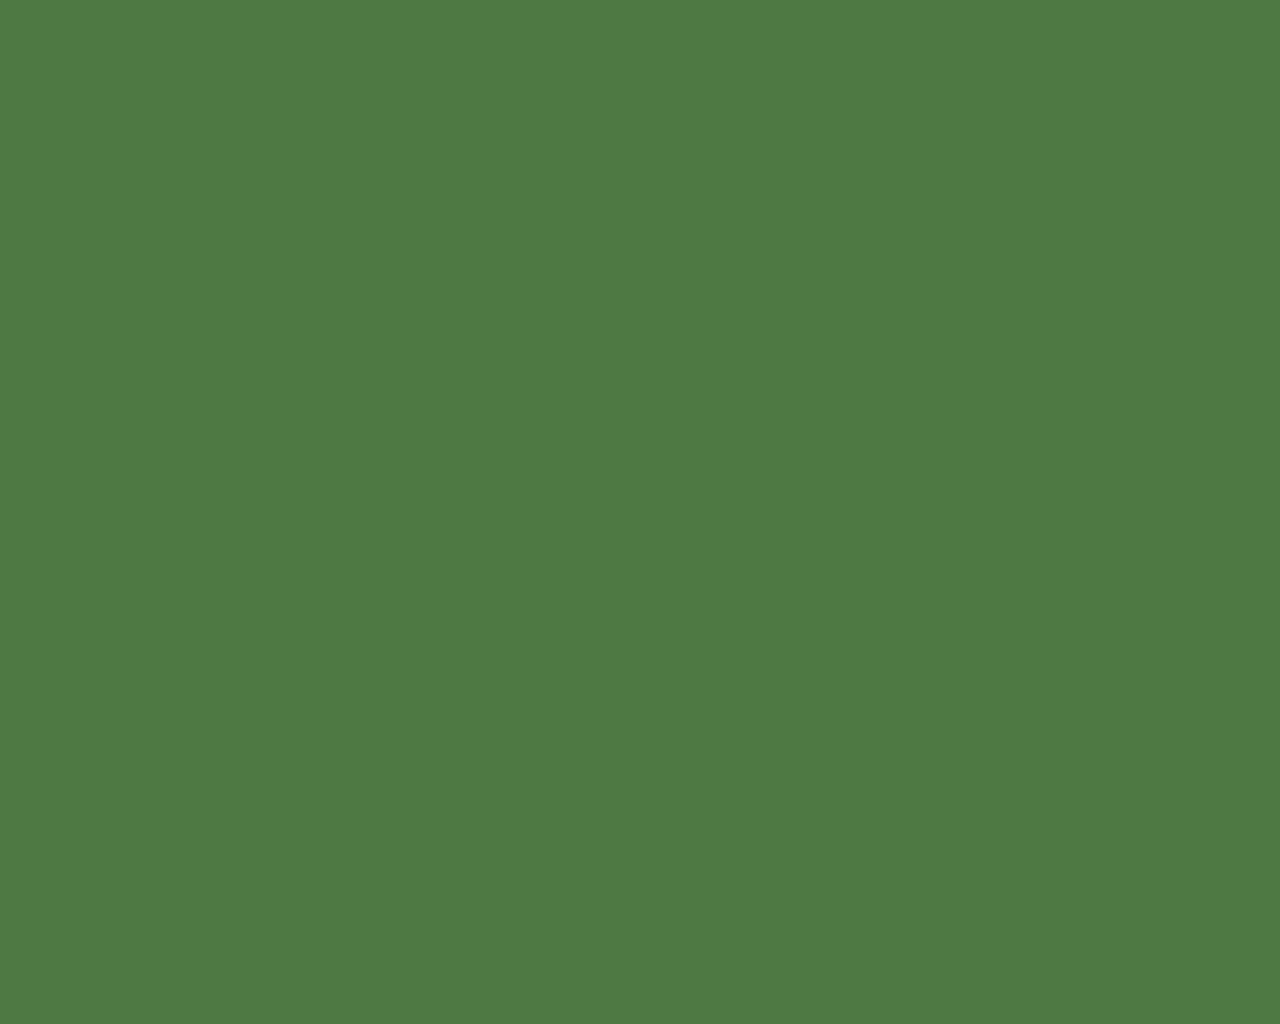 1280x1024 Fern Green Solid Color Background